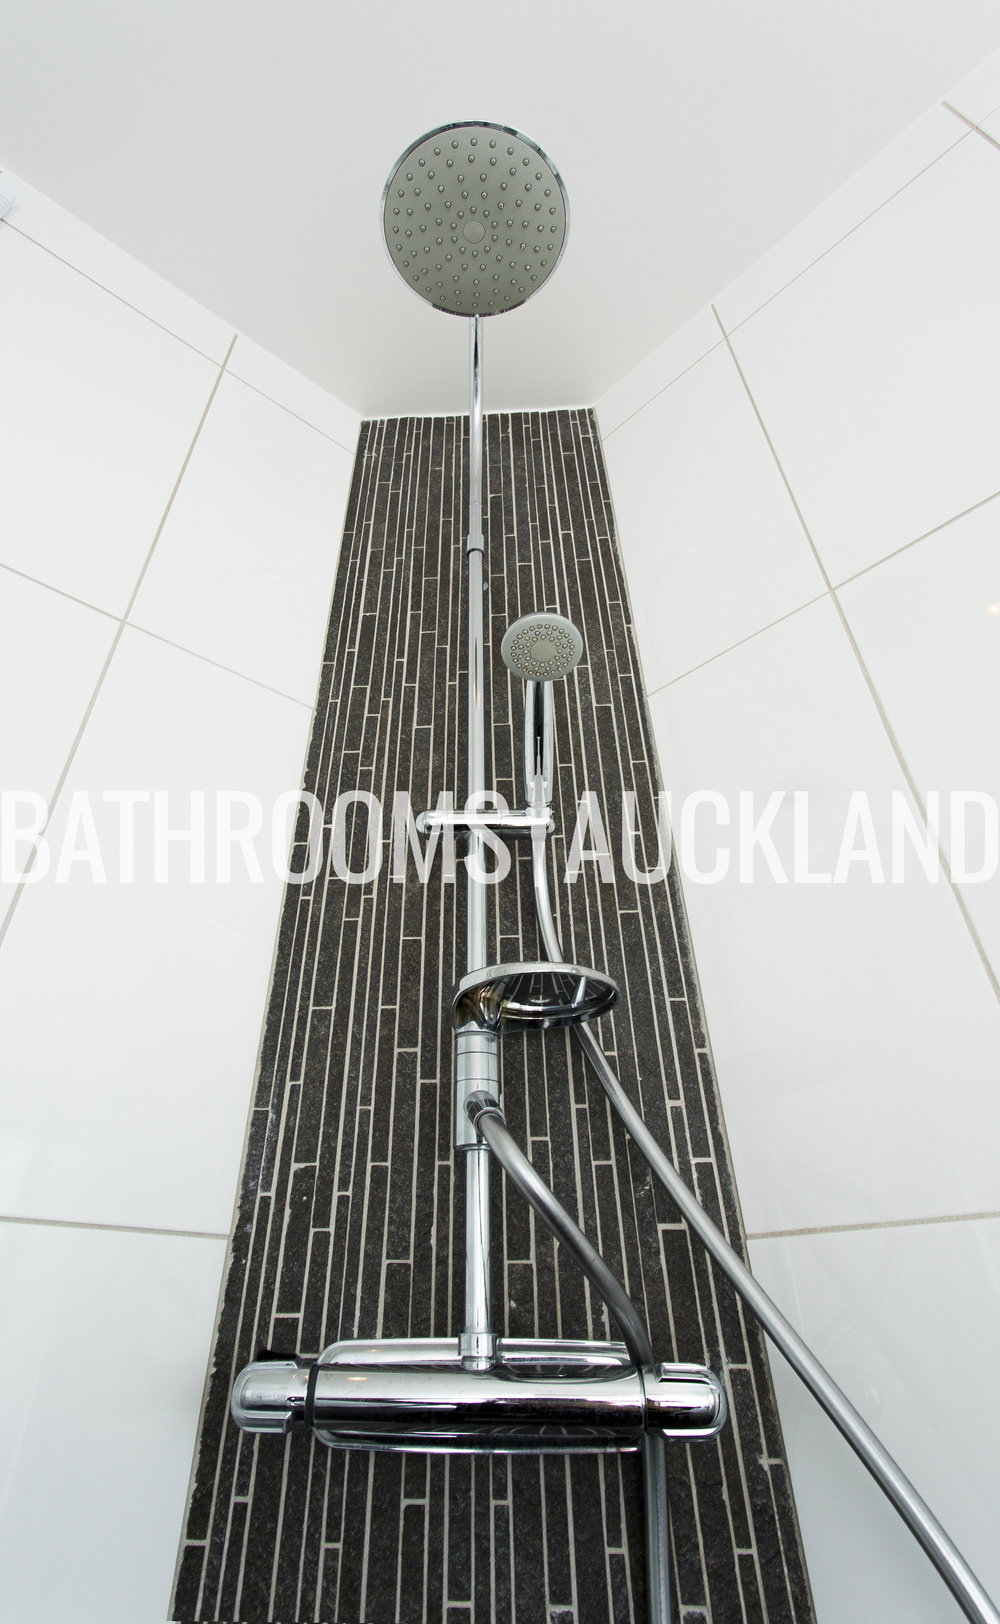 Bathrooms Auckland Renovation_Bathrooms In Auckland_Bathroom Renovation_Bathrooms Renovation_Bathrooms Auckland Renovation .1216.jpg